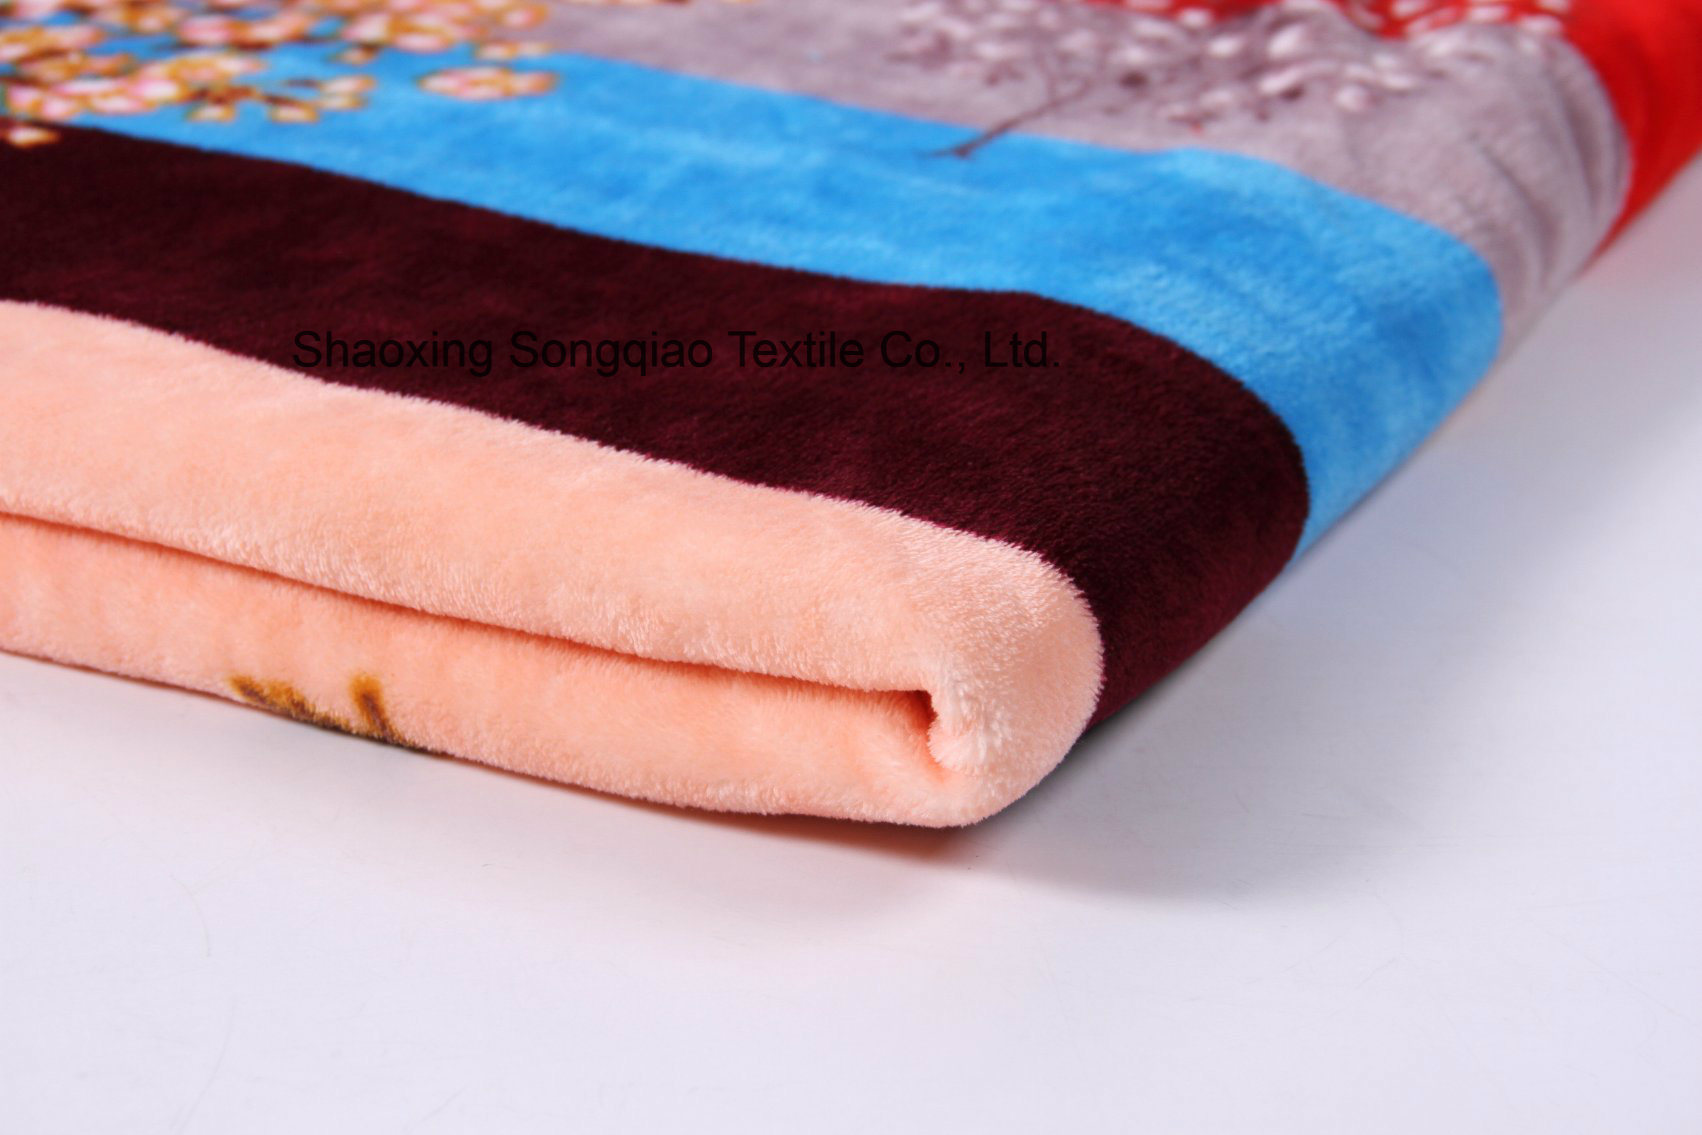 Printed Polyester Flannel/Coral Fleece Fabric - 16649-9 1#